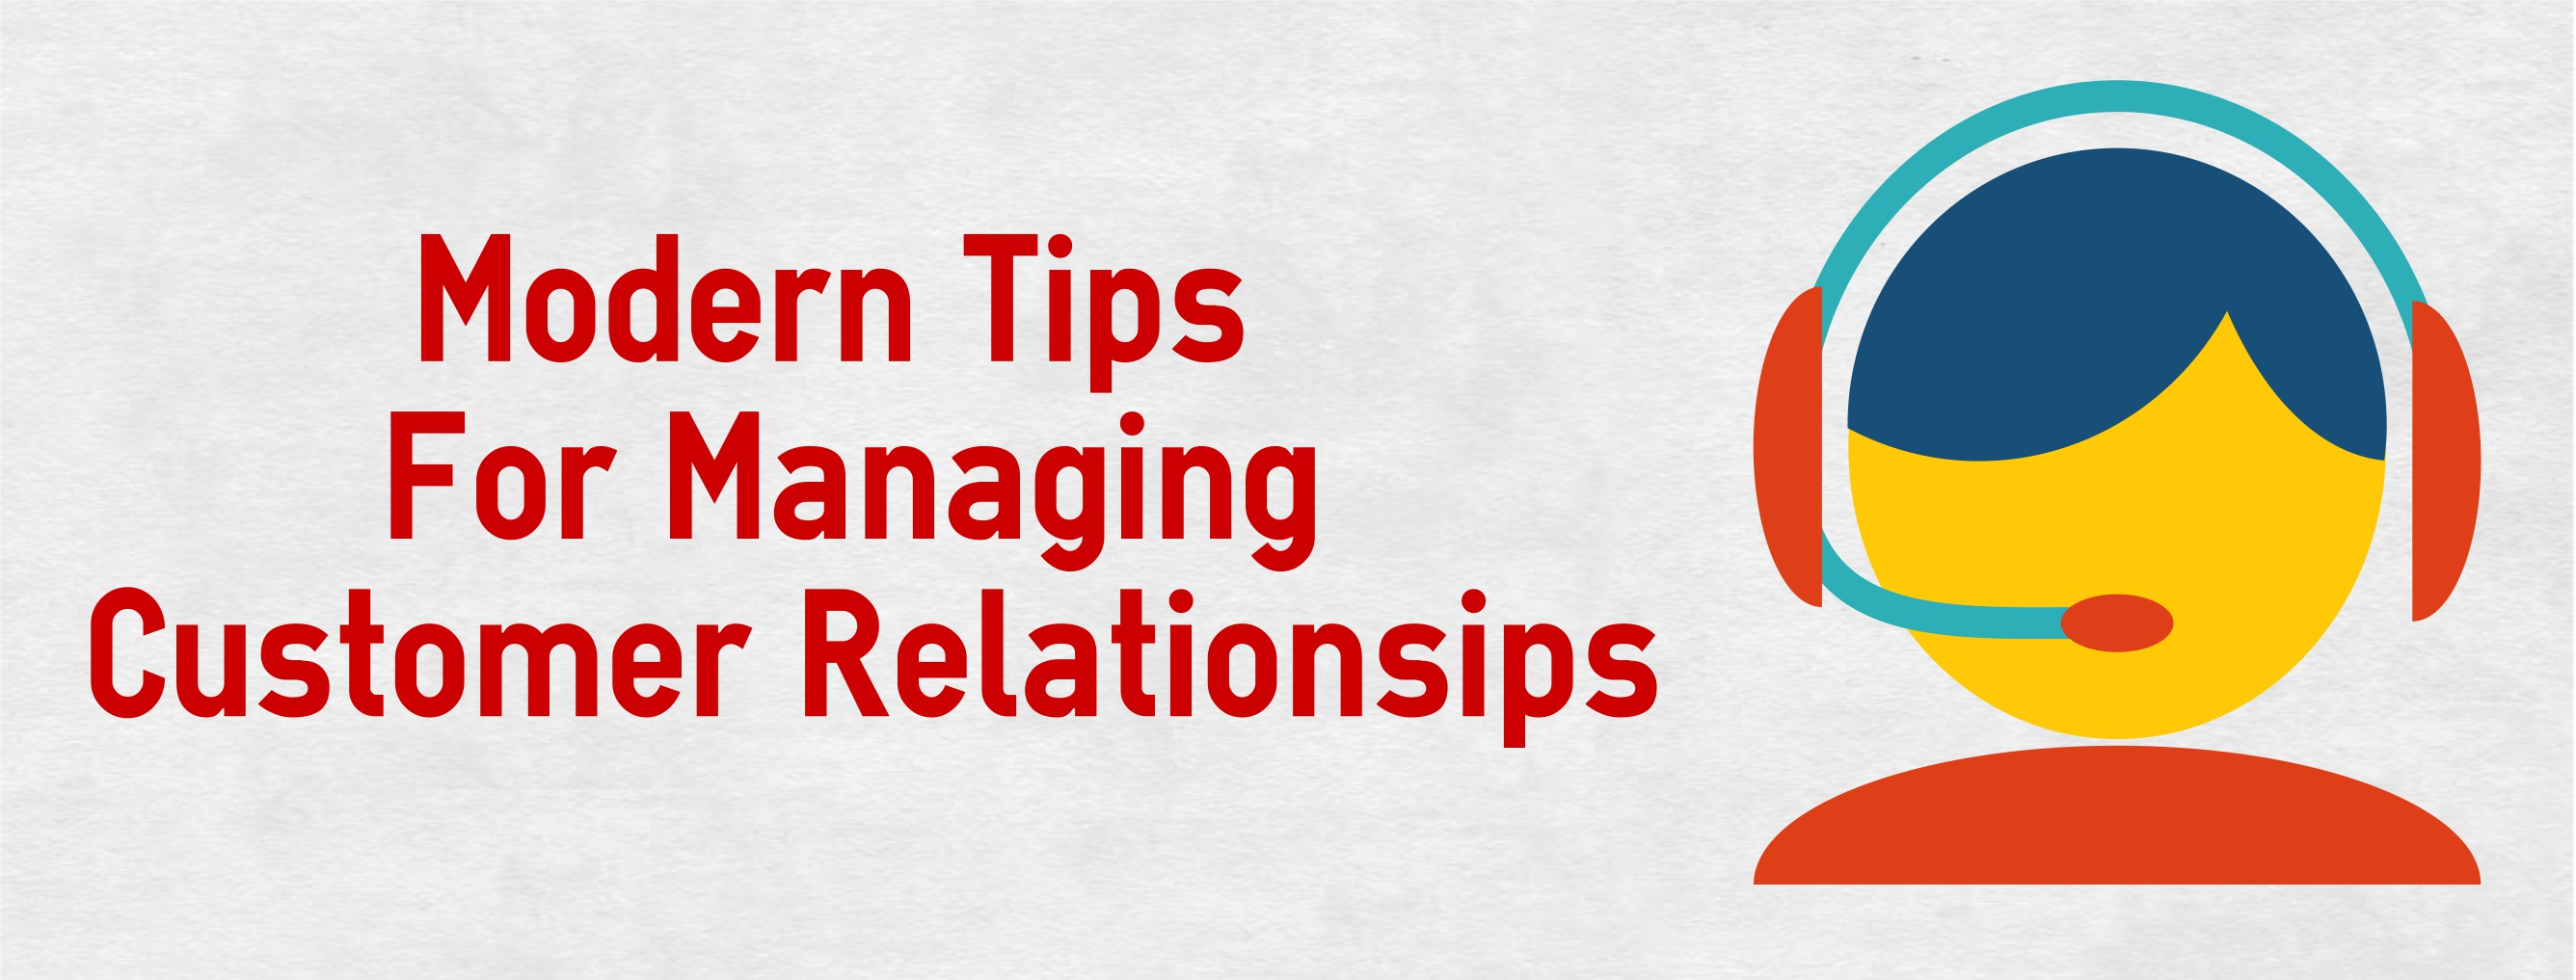 3 Easy Ways To Manage Customer Relationships